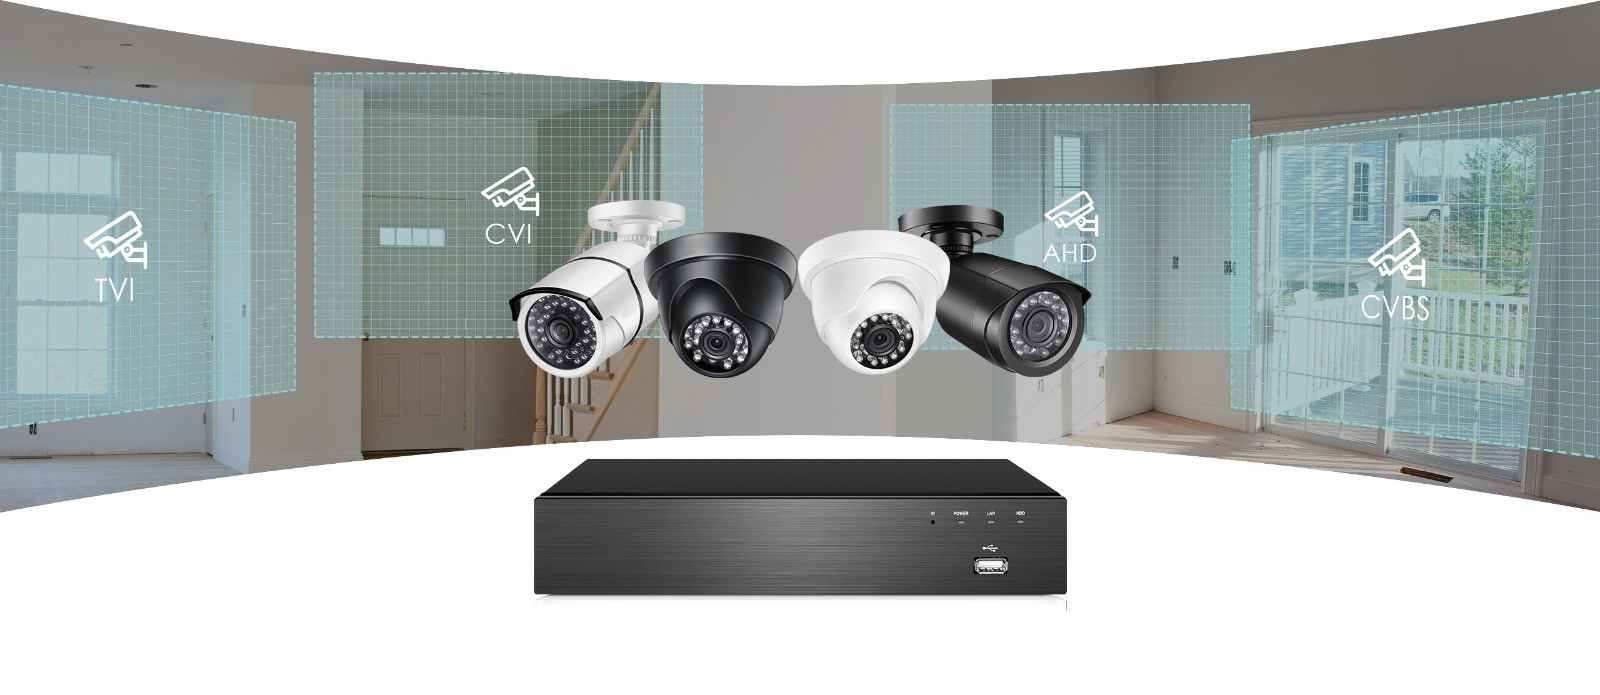 electric 4k security system alert manufacturer for home-22